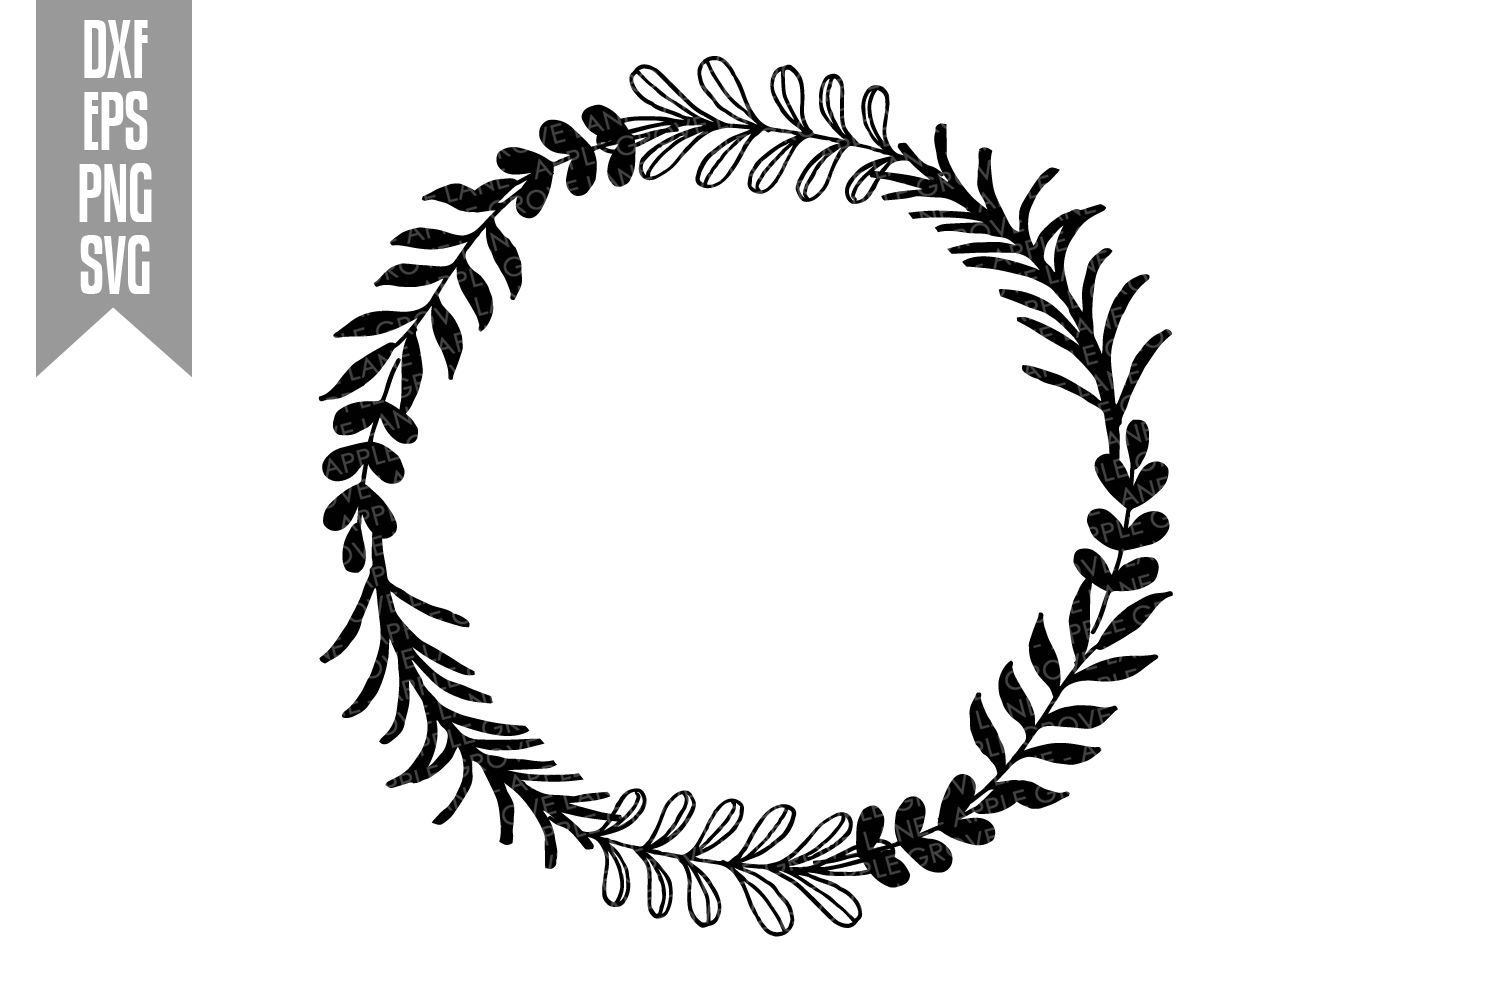 Wreath Svg Bundle - 6 designs included - Svg Cut Files example image 5